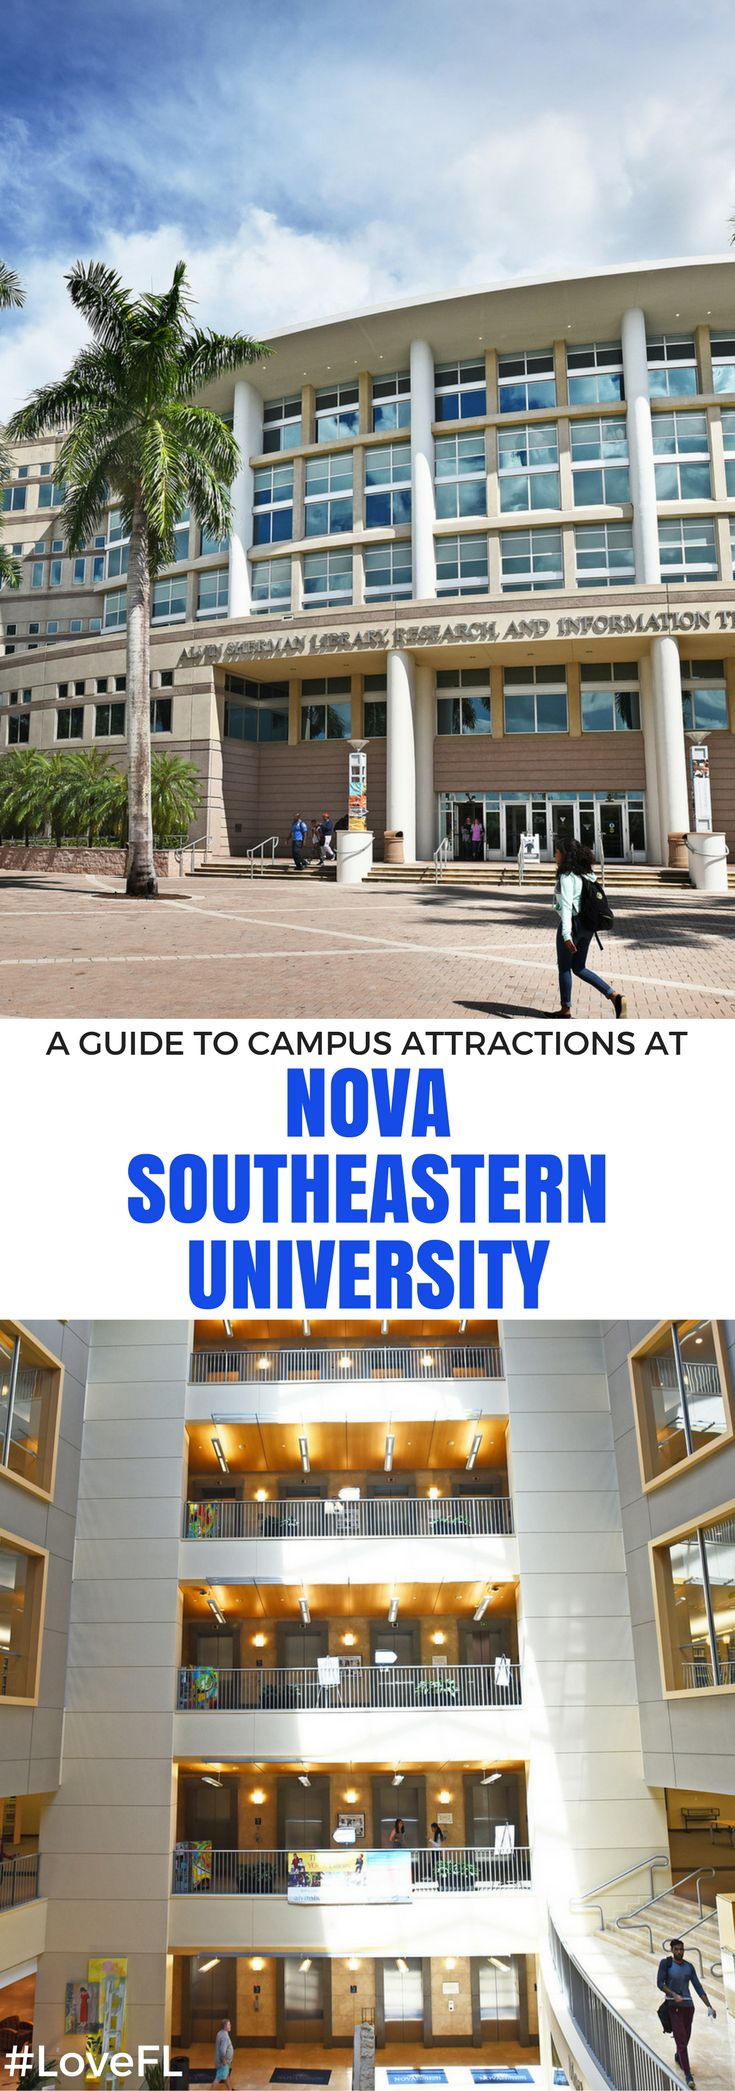 A Guide to Campus Attractions at Nova Southeastern University | #Florida #College #Travel